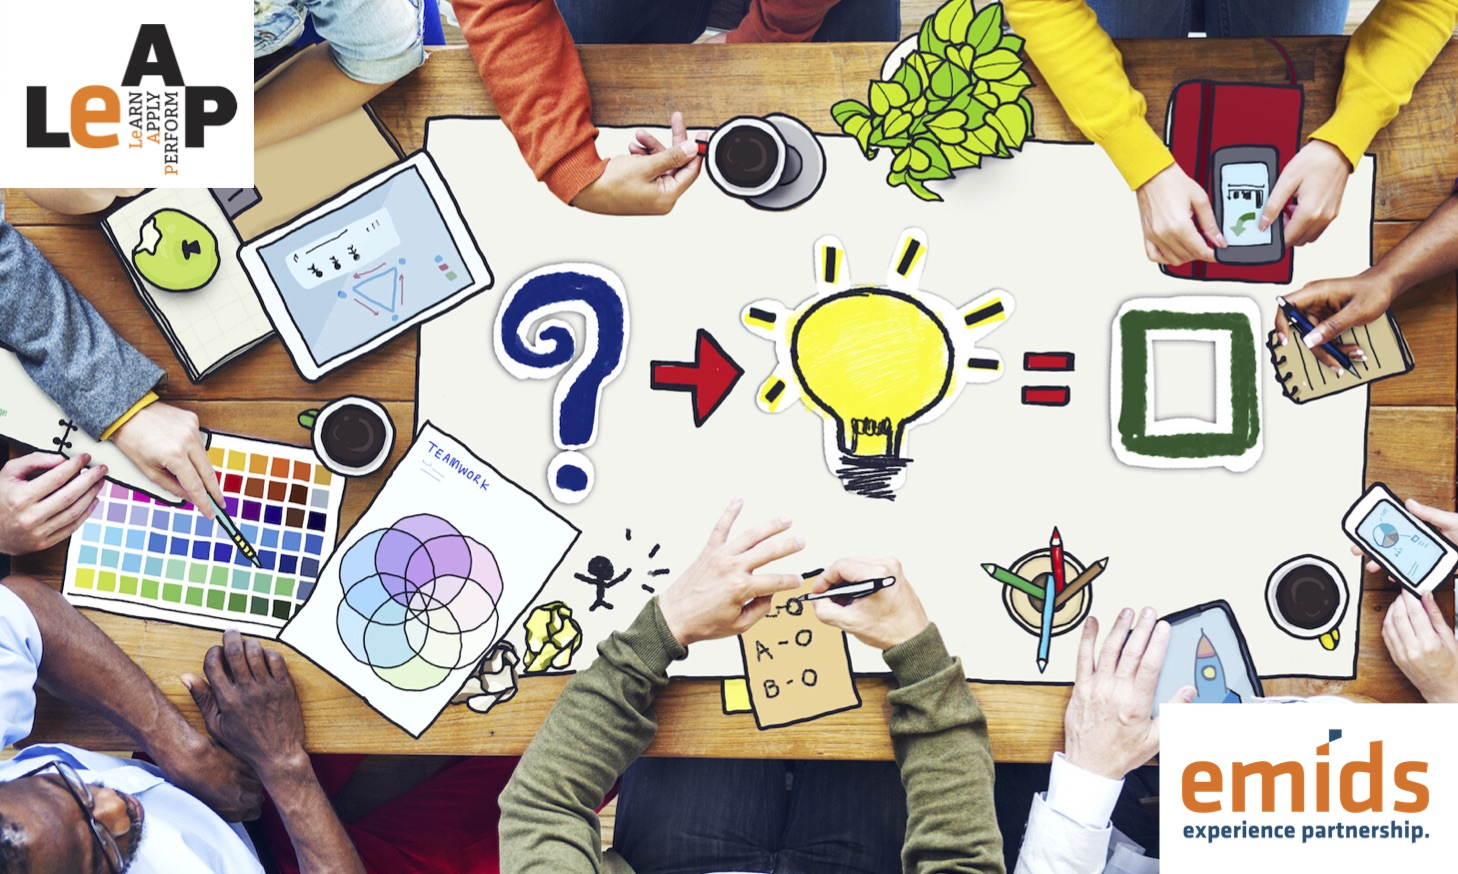 Three ways to get creative with your teams